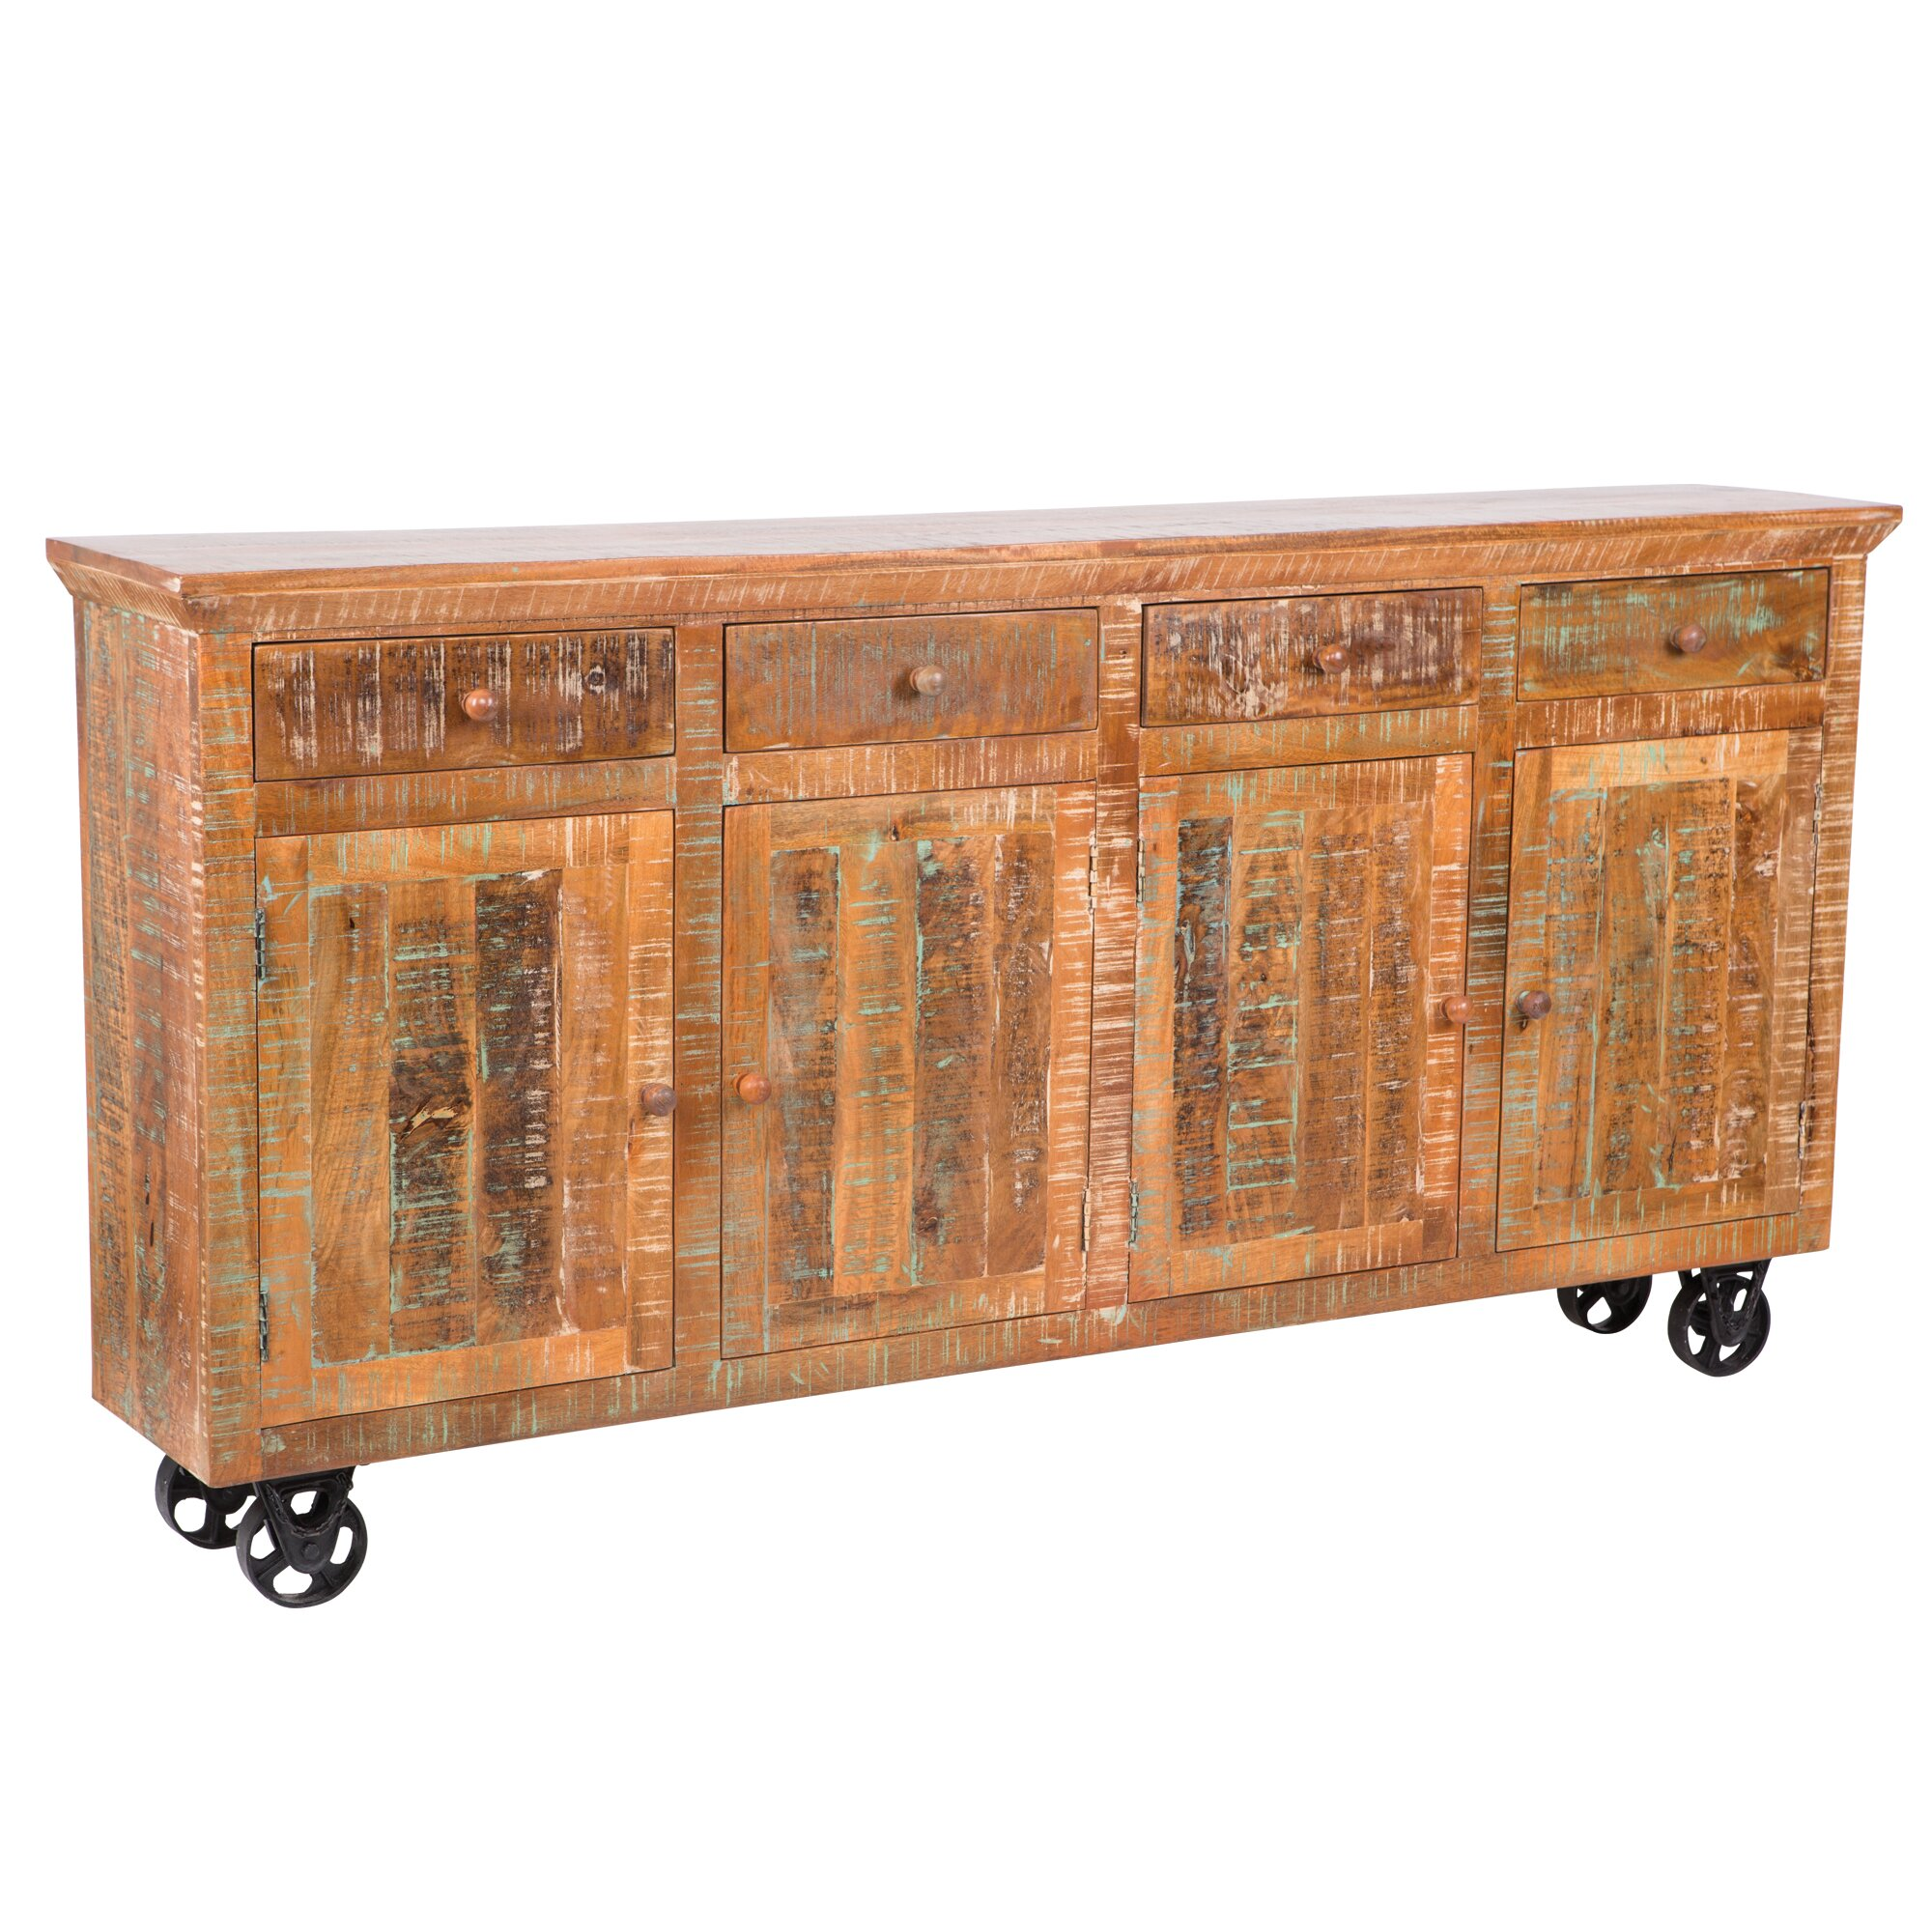 yosemite home decor yosemite home decor furniture cabinet With yosemite home decor furniture